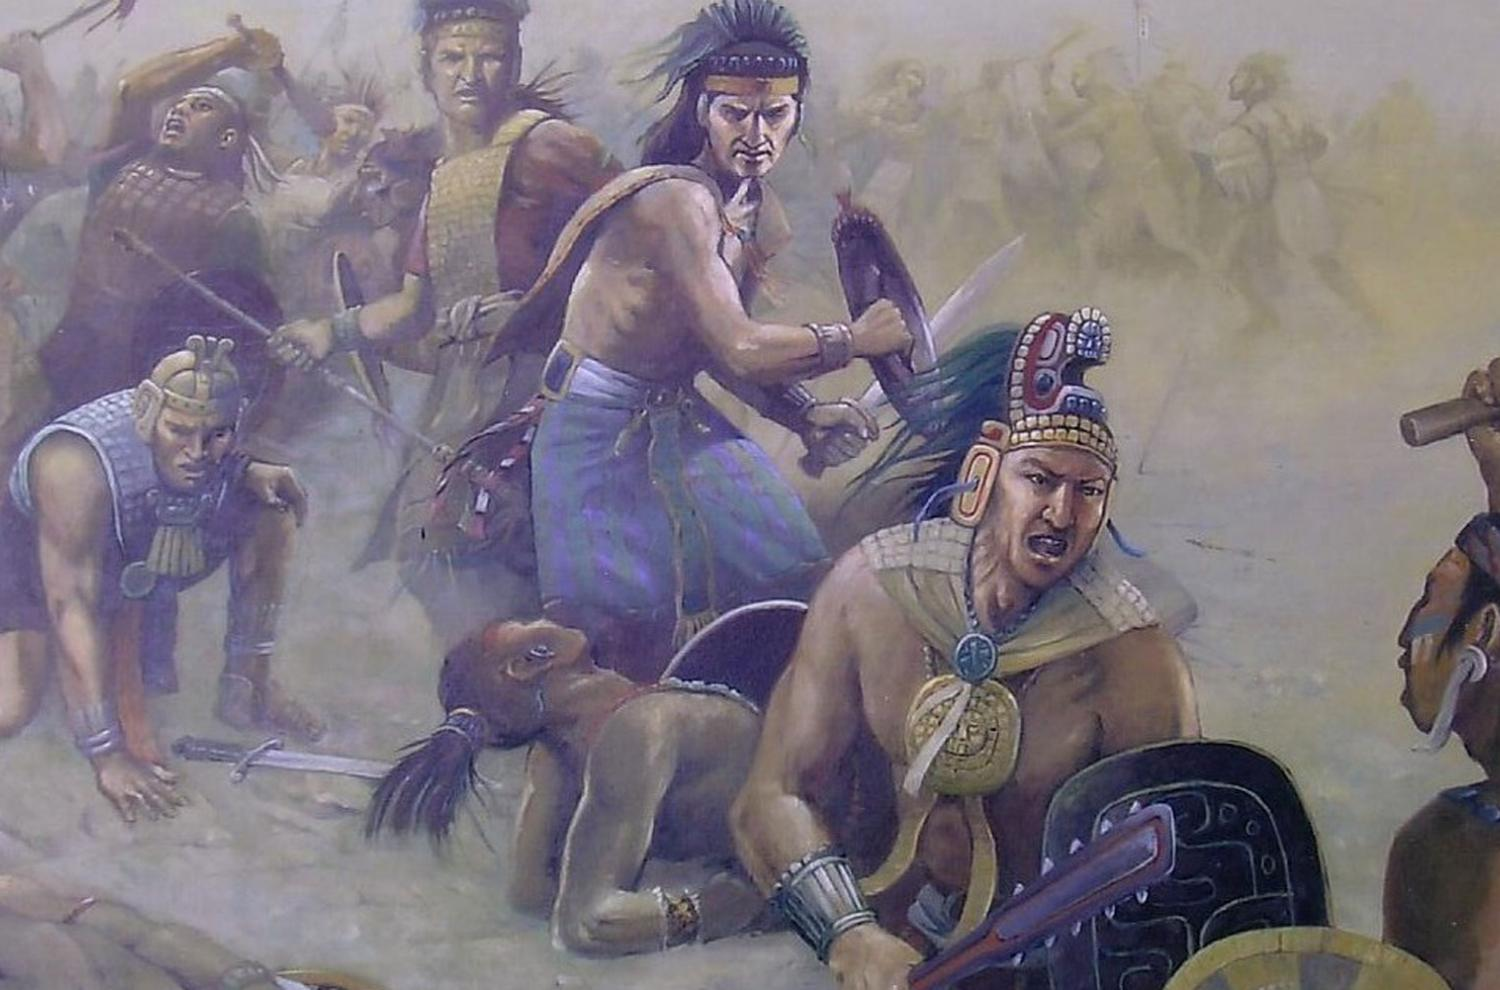 After the successive deaths of the Nephites' most prominent leaders, their government fell and war broke out again. Image by Joge Cocco